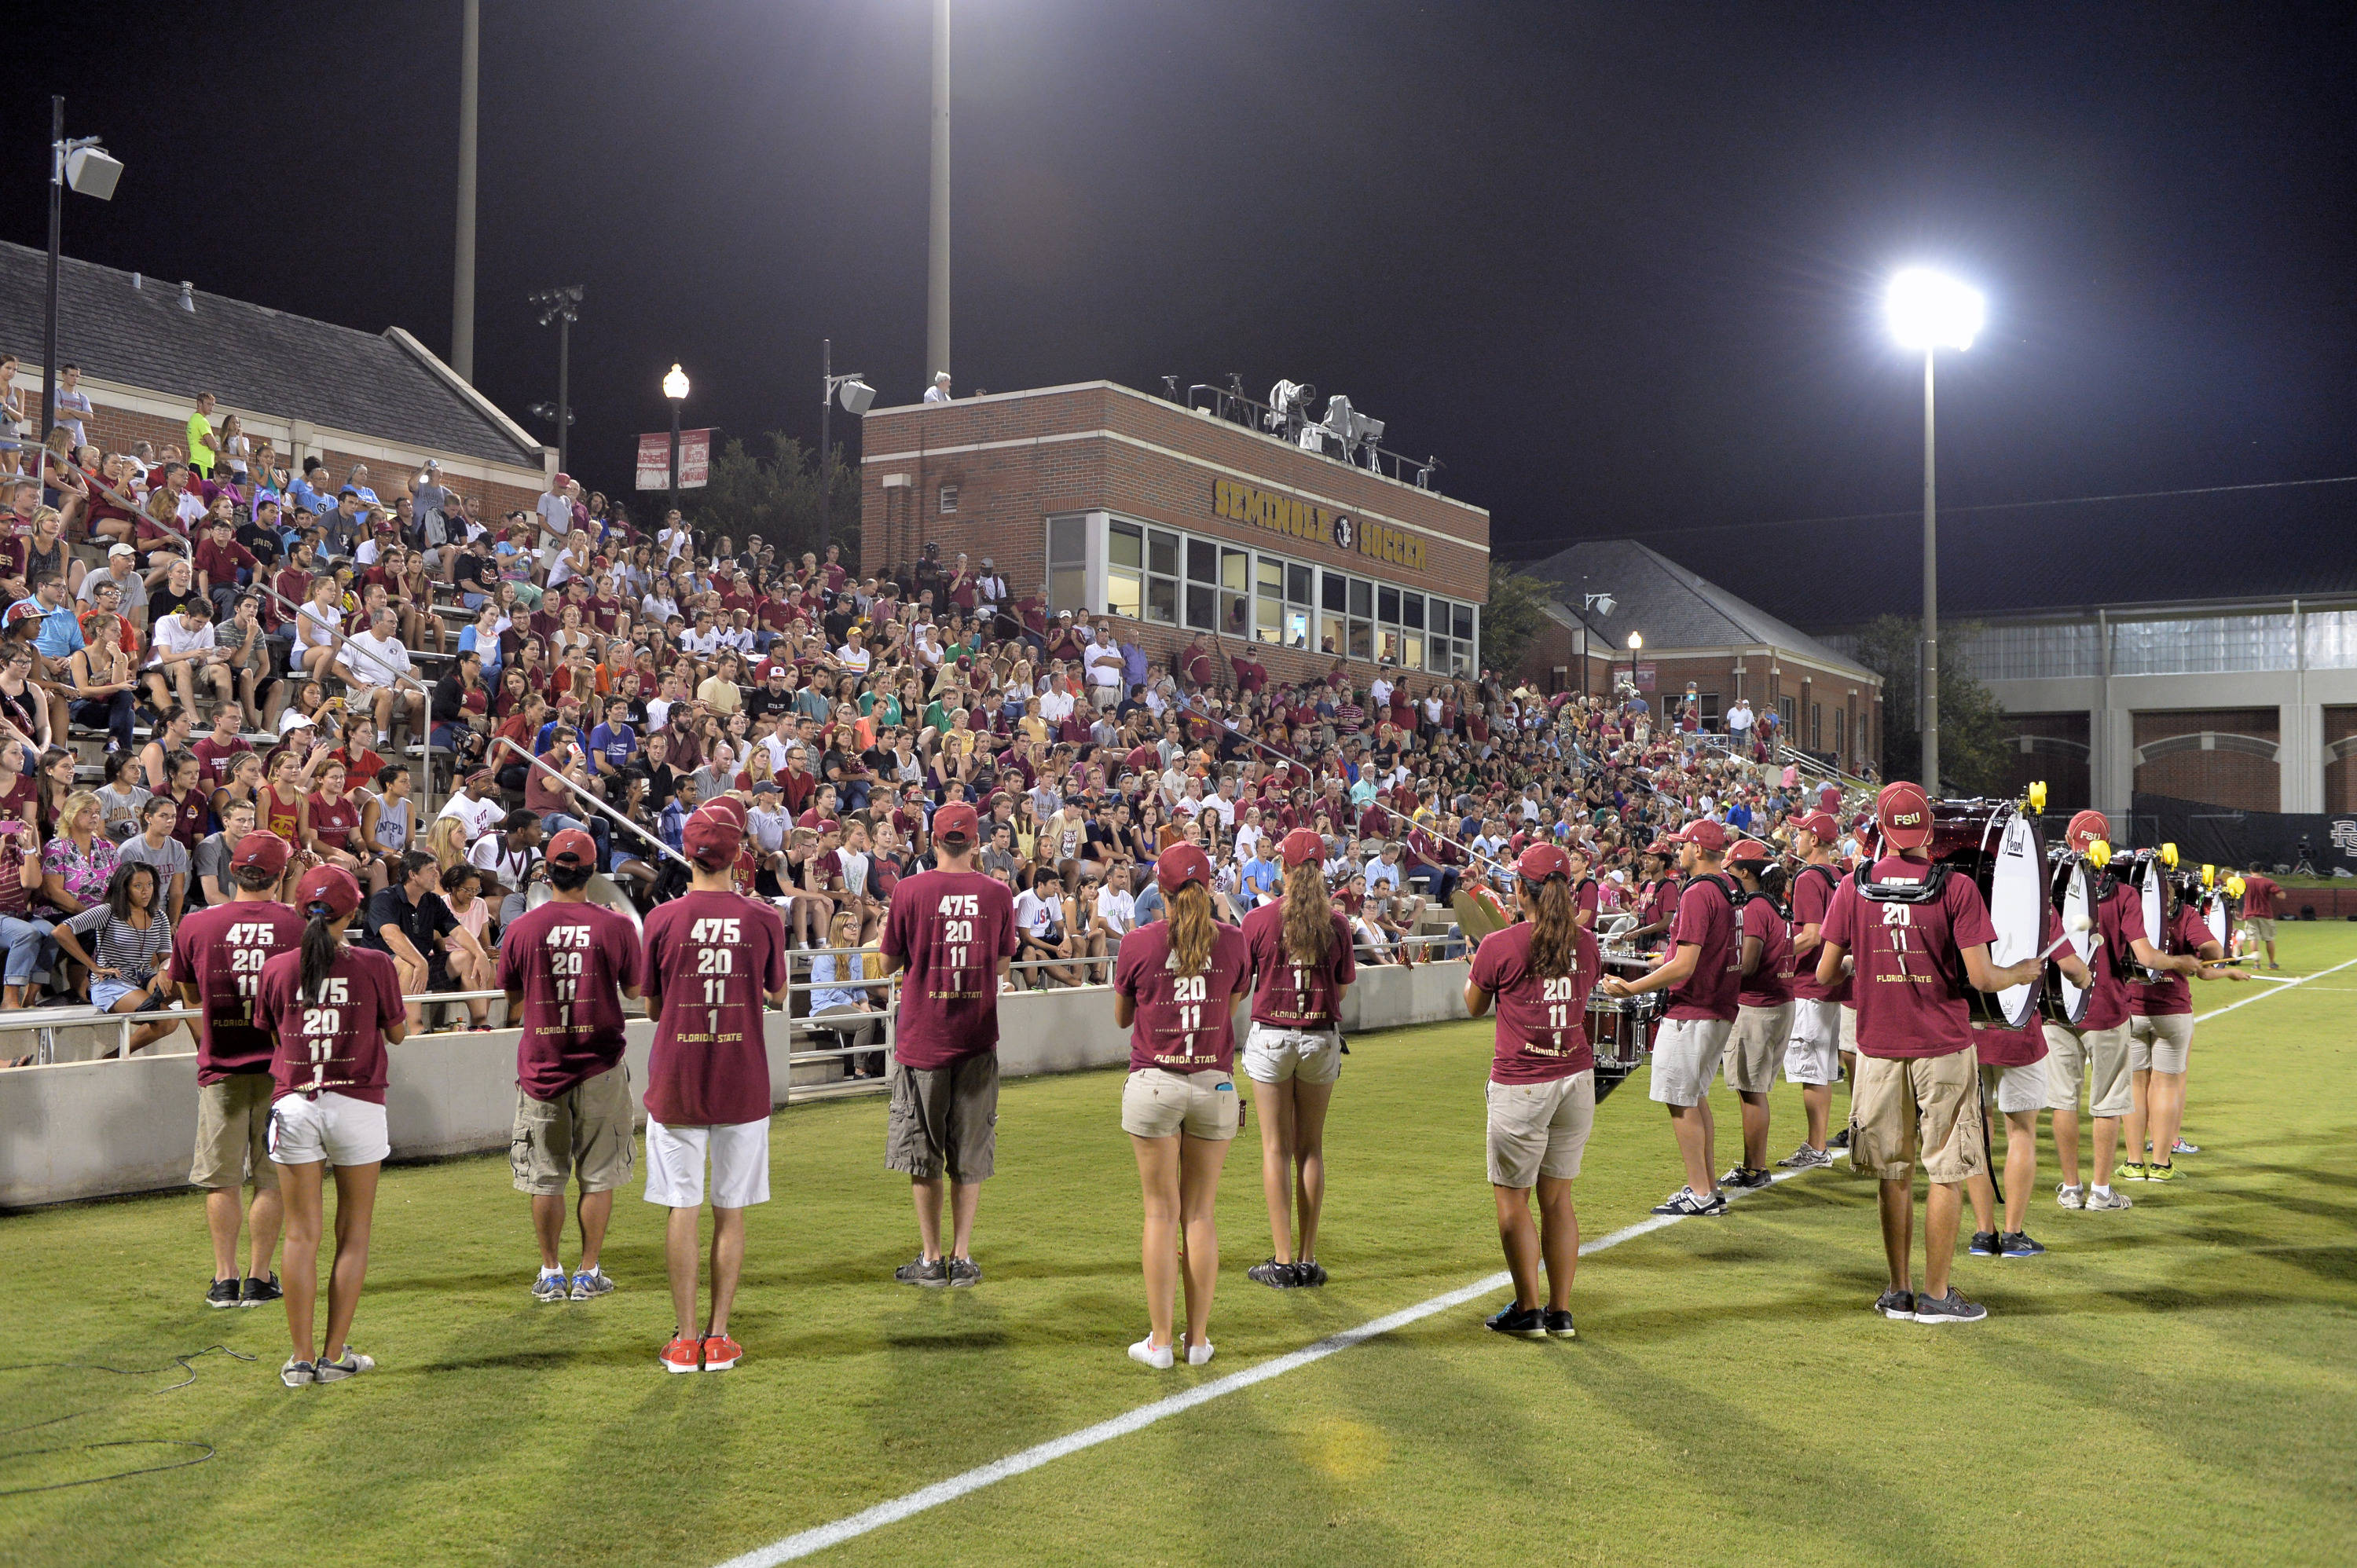 A look at the Marching Chiefs' Drumline and the crowd inside the Seminole Soccer Complex at halftime.